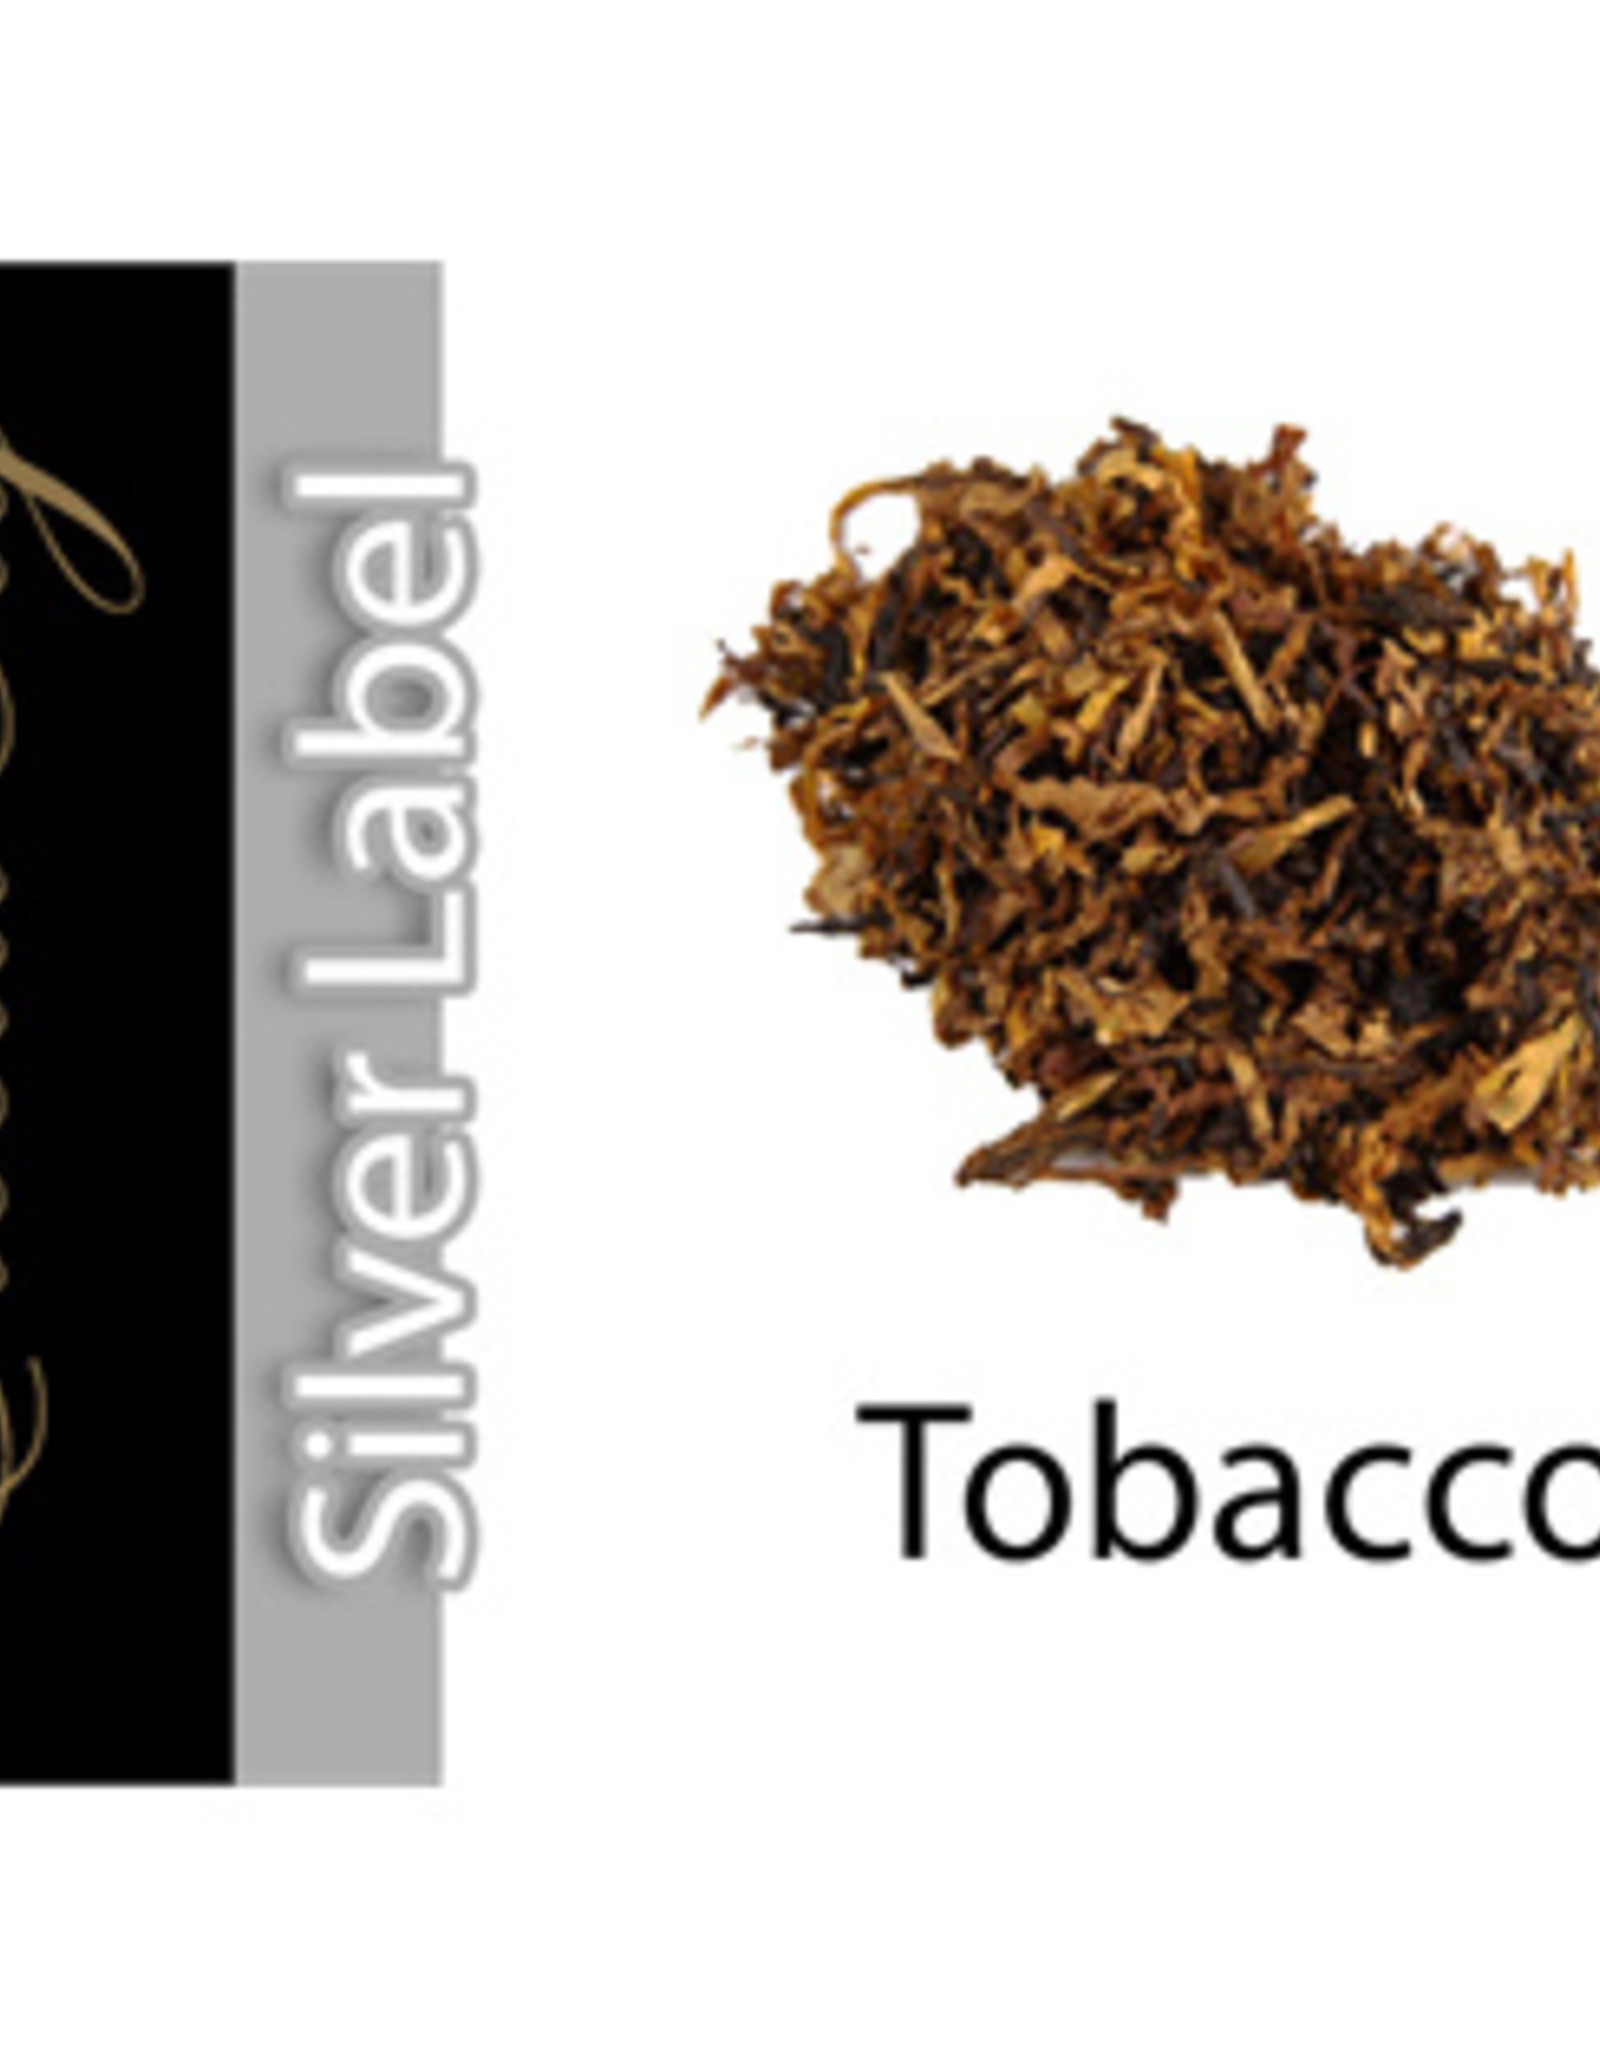 Exclucig Exclucig Silver Label E-liquid Tobacco 18 mg Nicotine